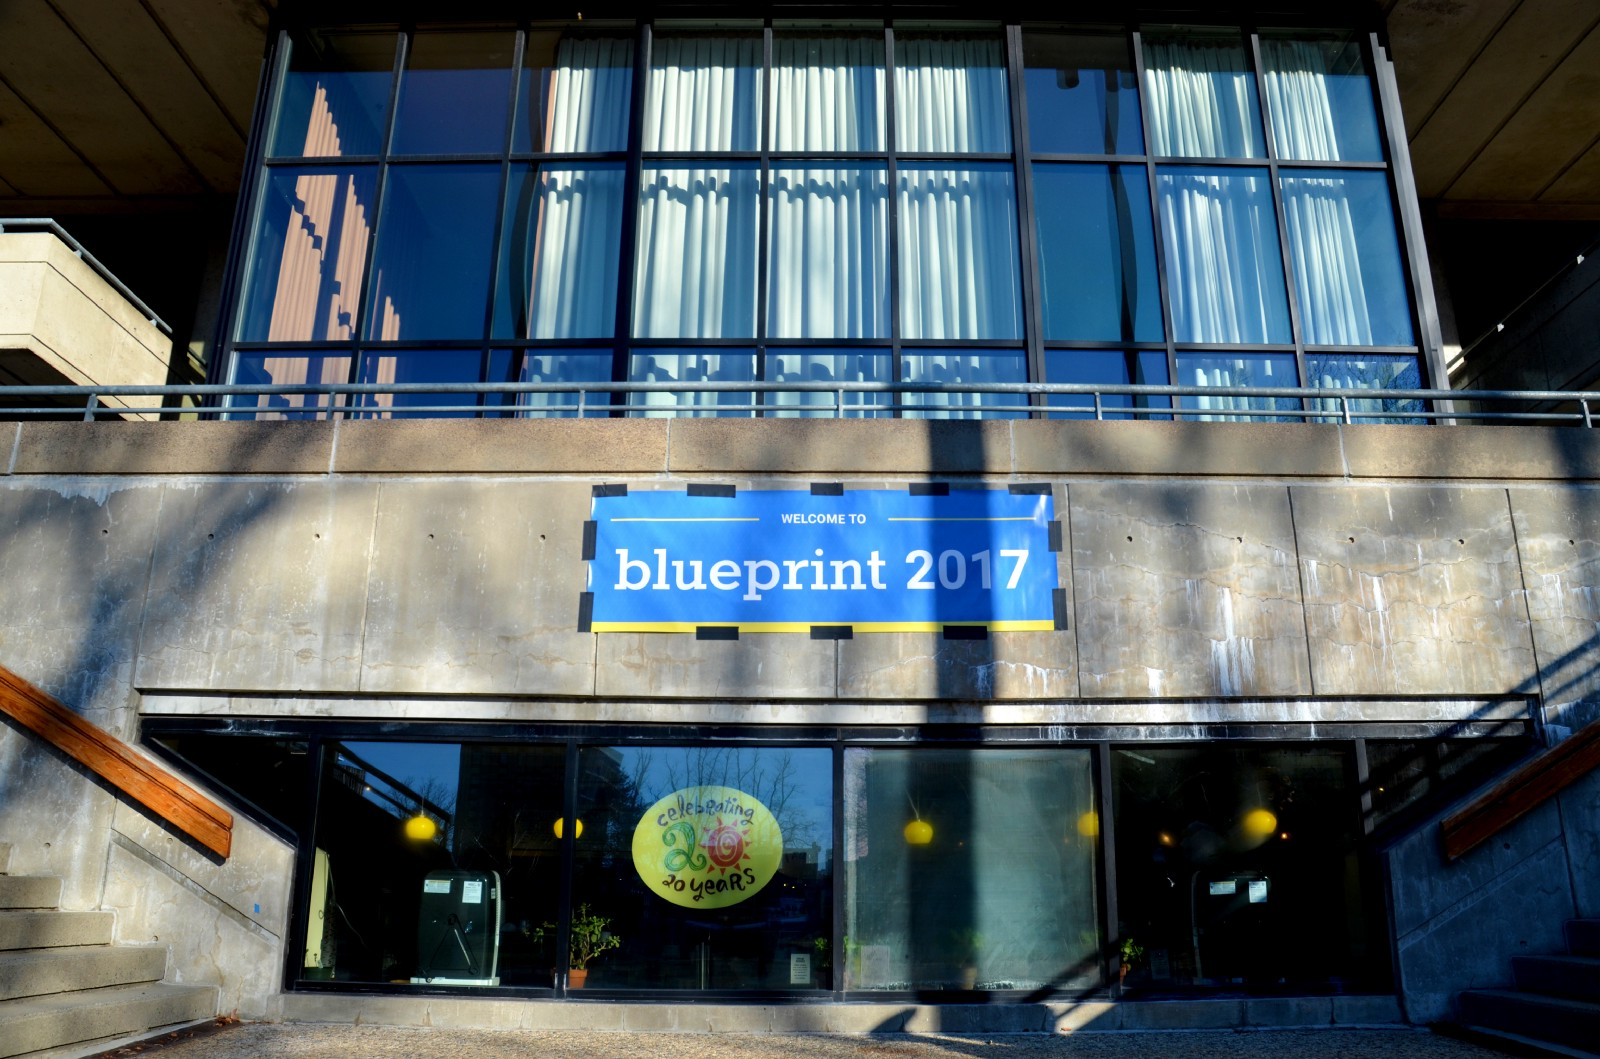 Blueprint 2017 finalist projects hackmit stories medium campus for blueprint a weekend learnathon and hackathon where students learn programming skills then build apps that apply them in creative ways malvernweather Choice Image